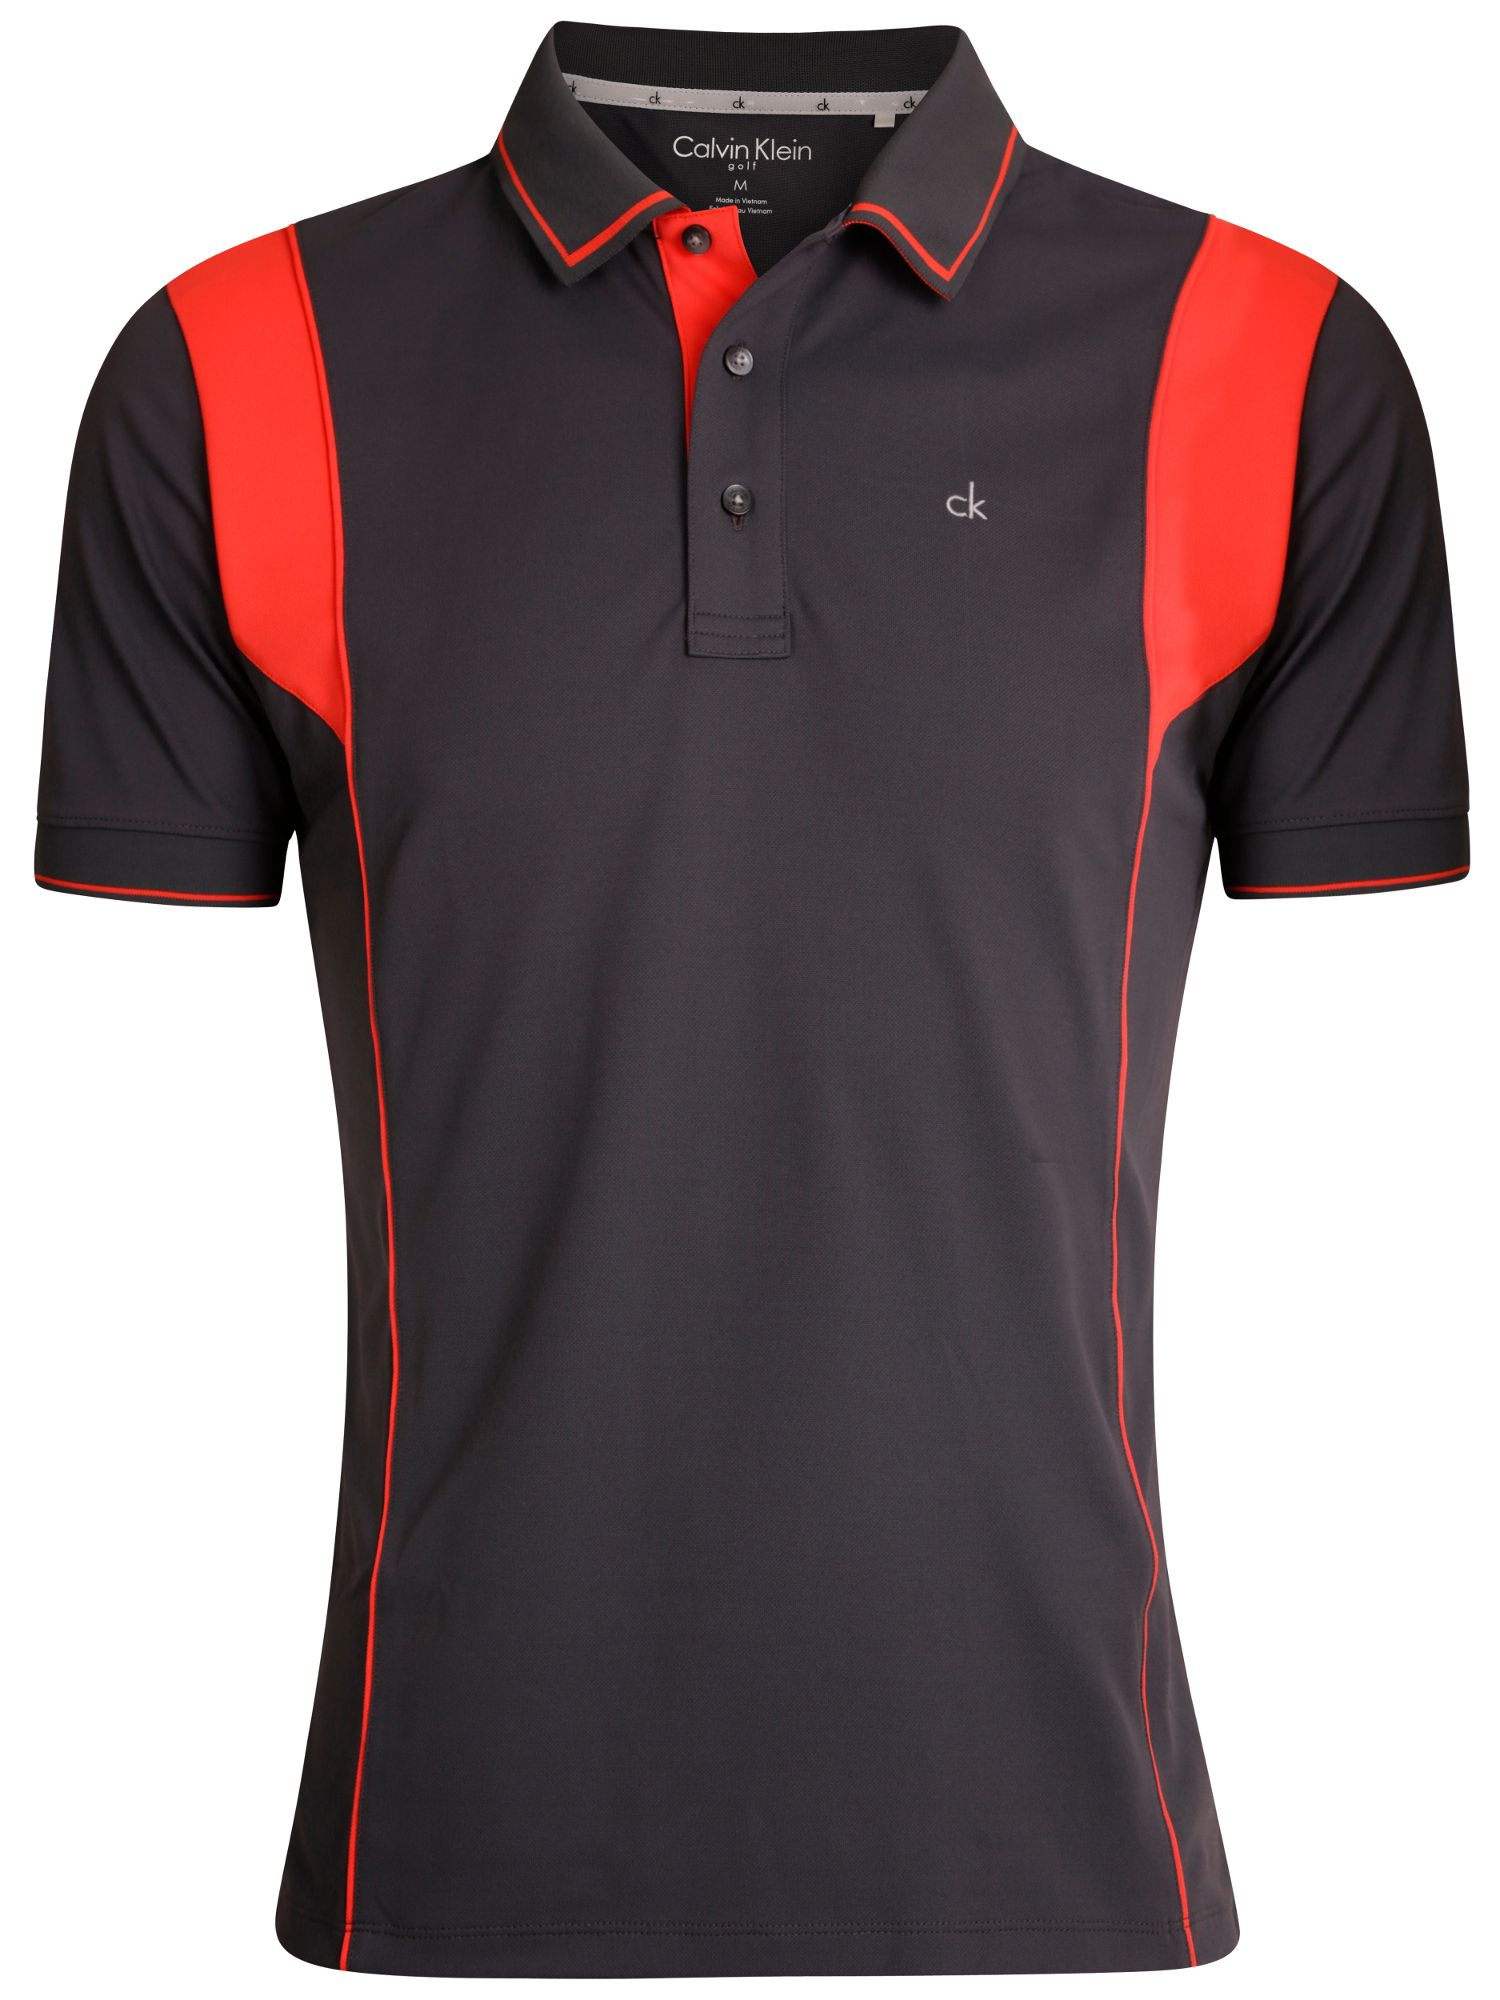 Torque tech polo shirt